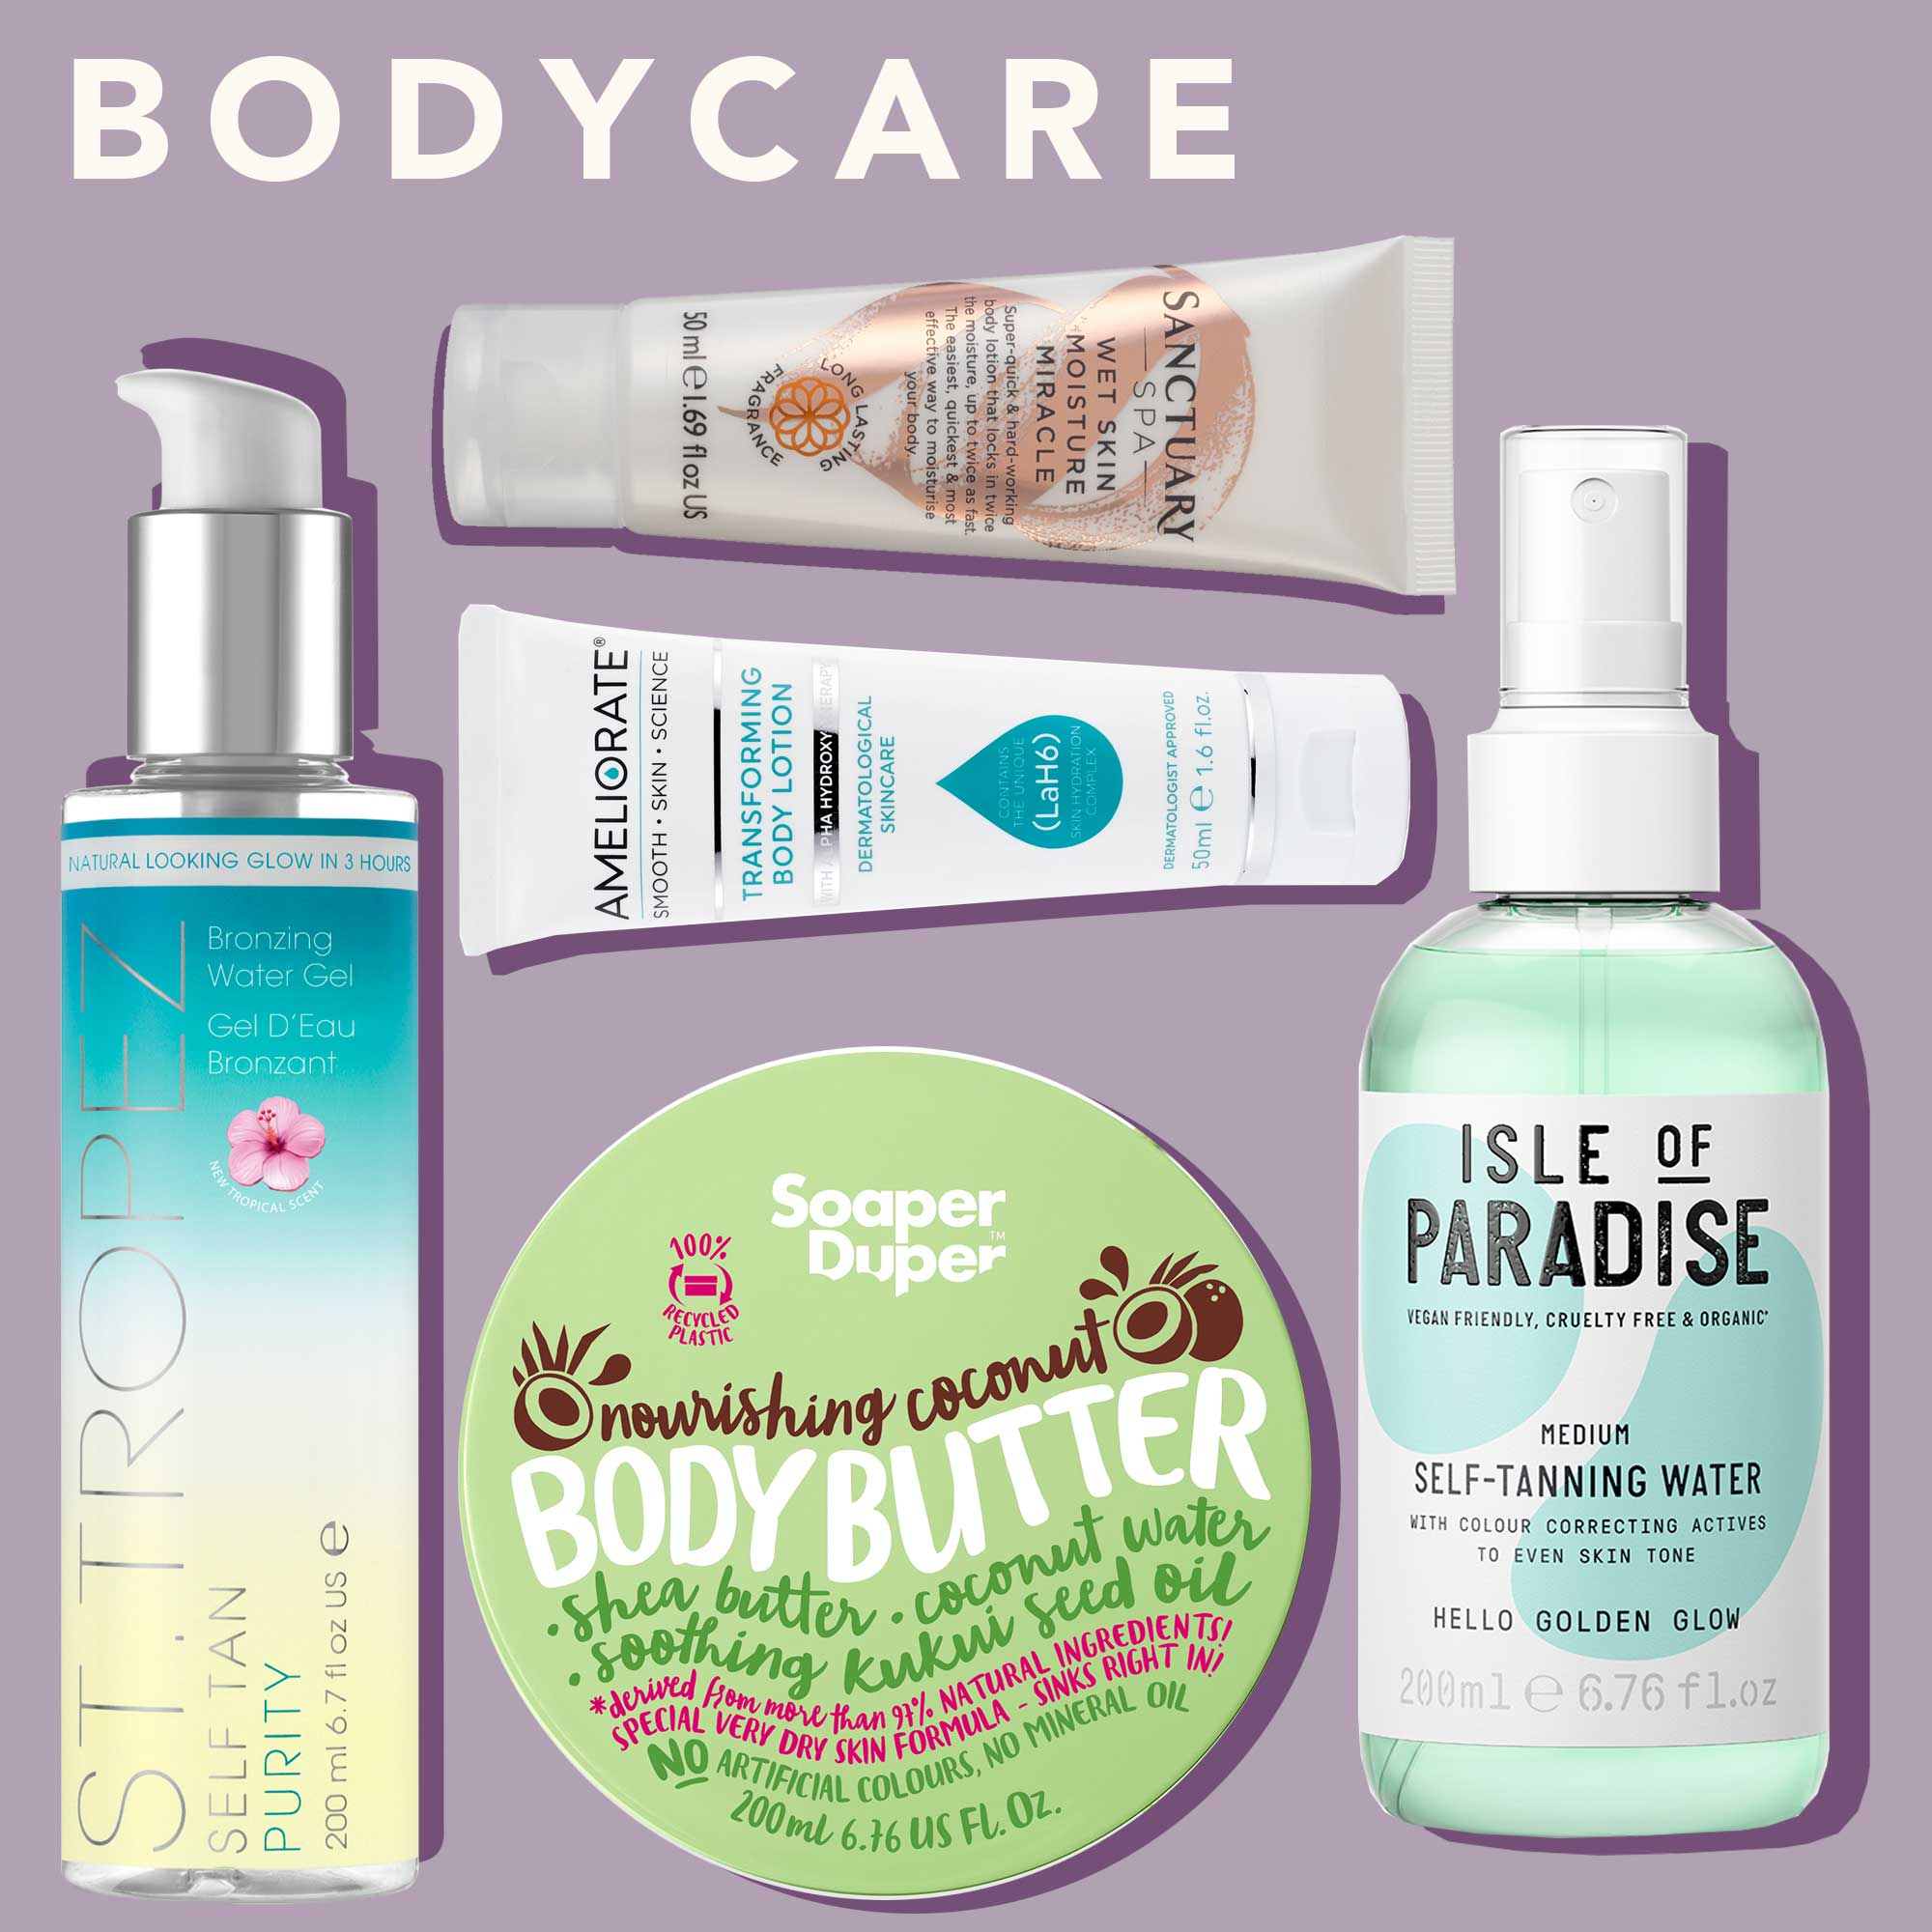 STS-CATEGORIES-FLATLAYS-BODY